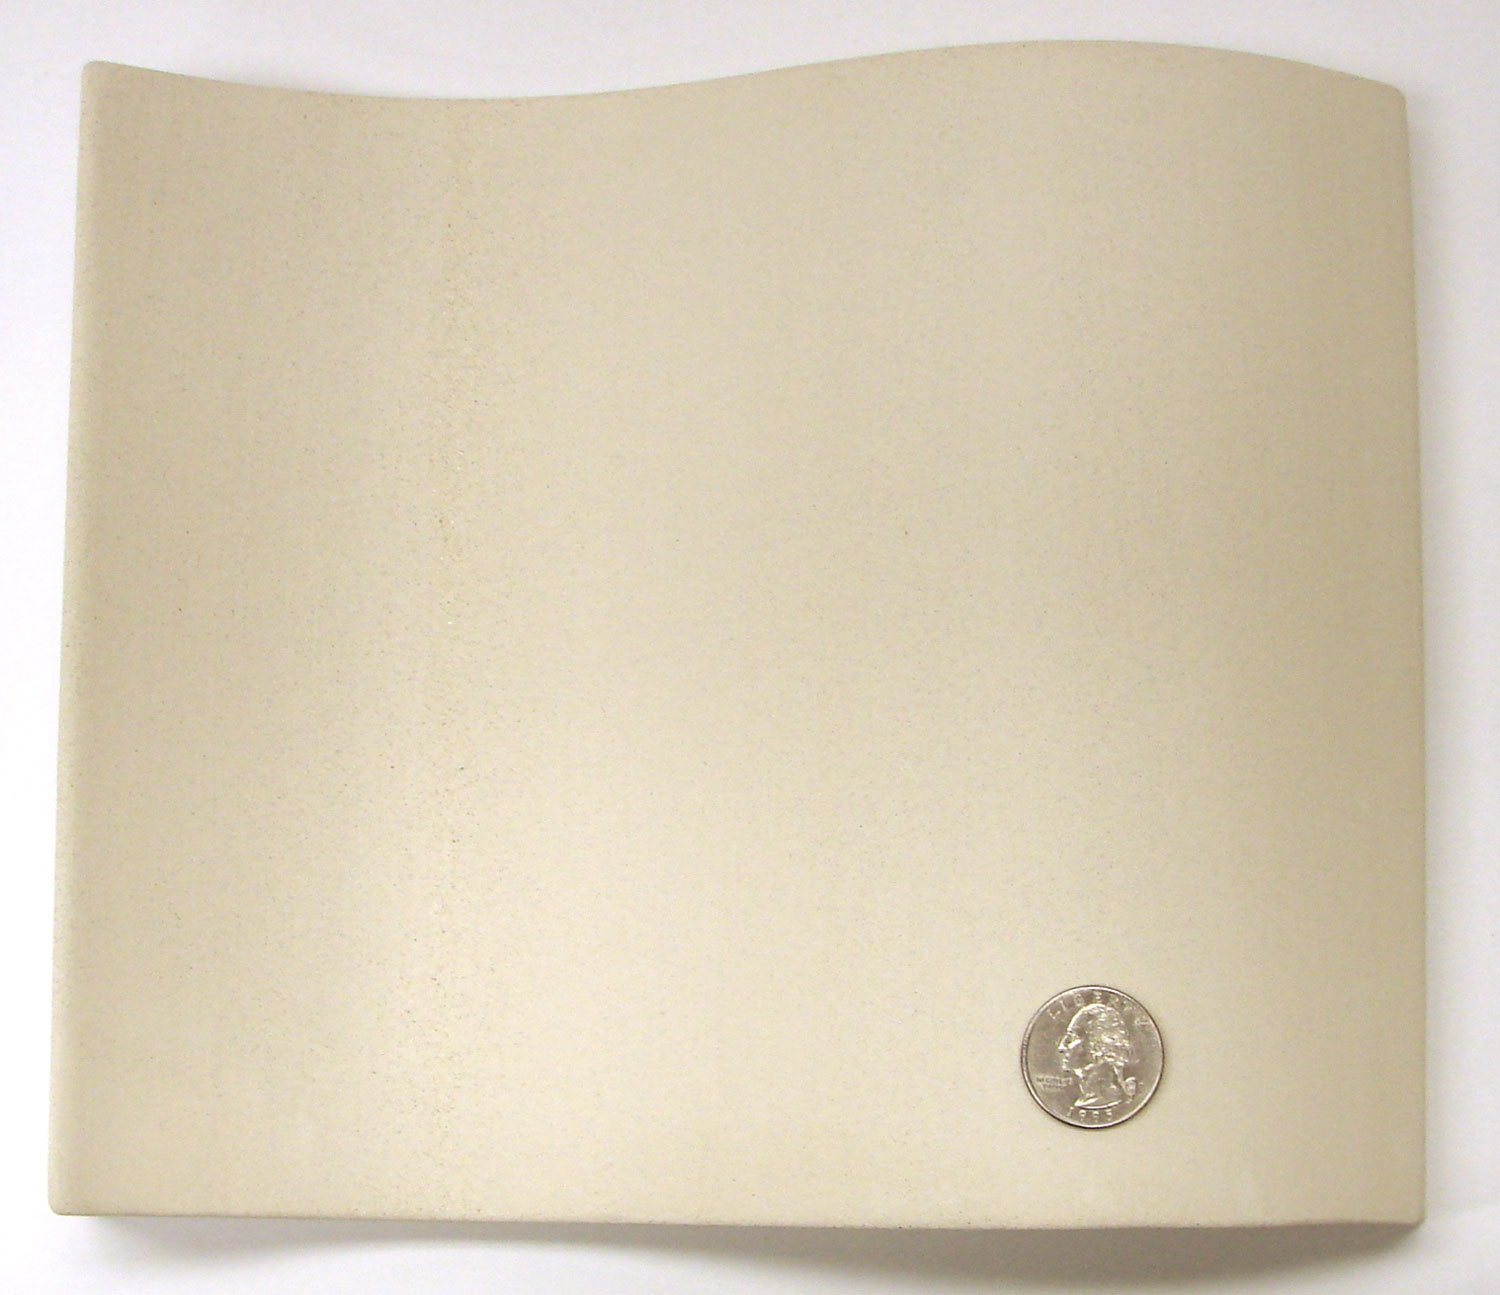 9-3/4'' X 8-1/4'' Small Double Curve Mold